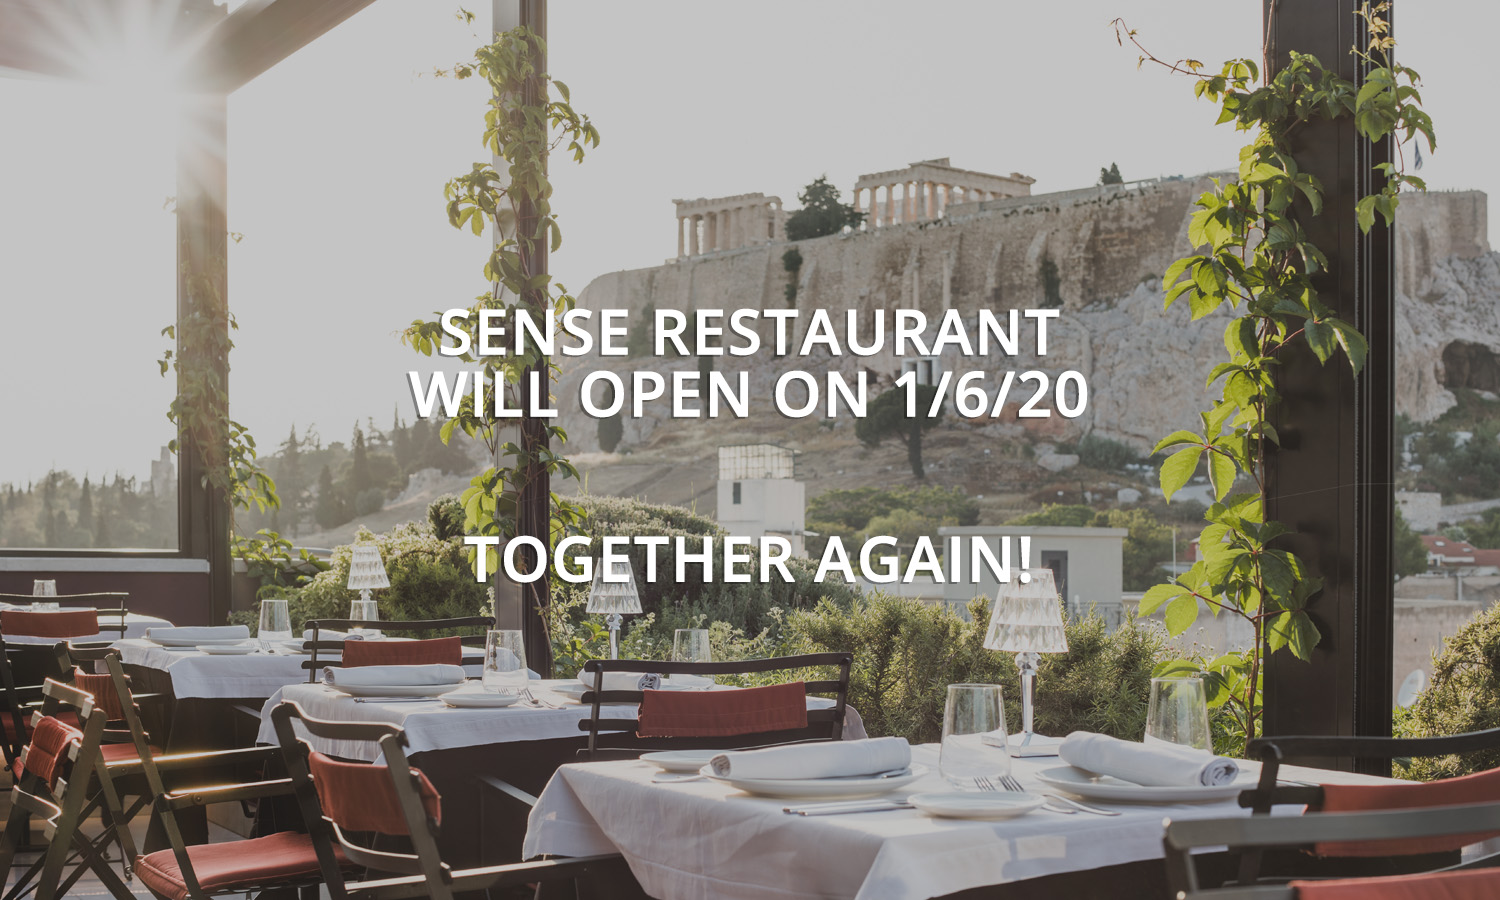 SENSE Restaurant with Acropolis view and sun shinning